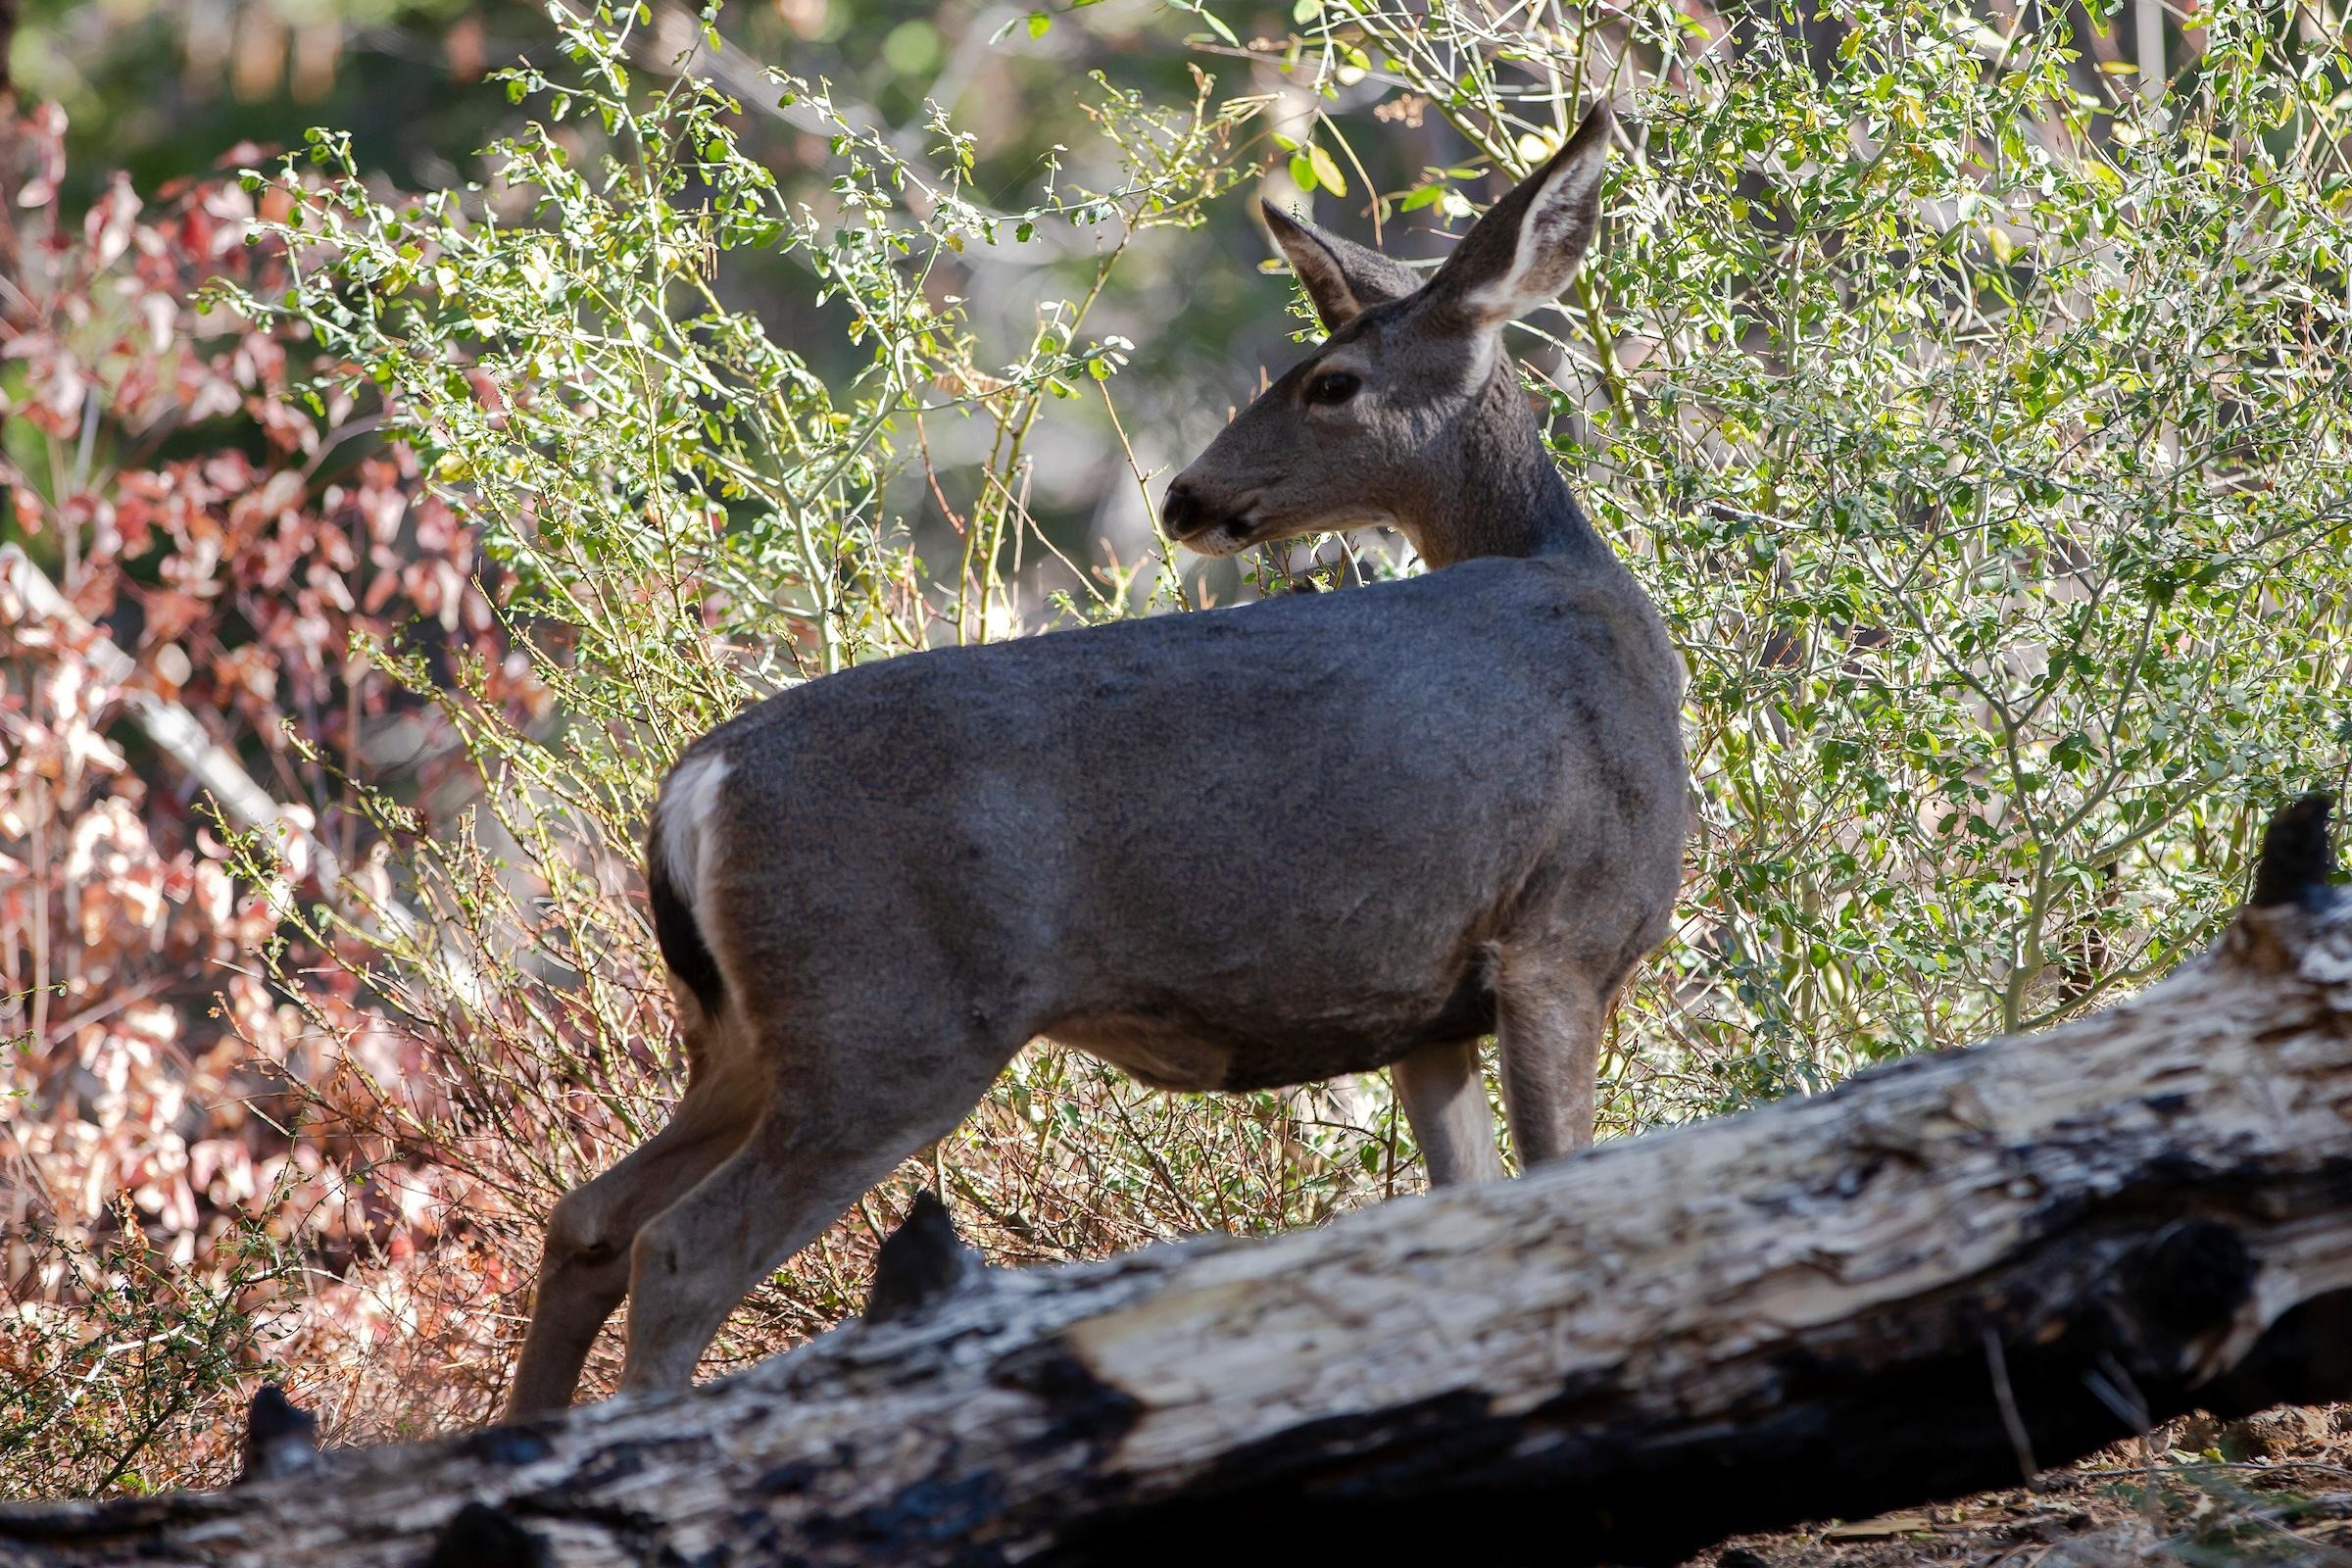 How to Spot Wildlife in Yosemite